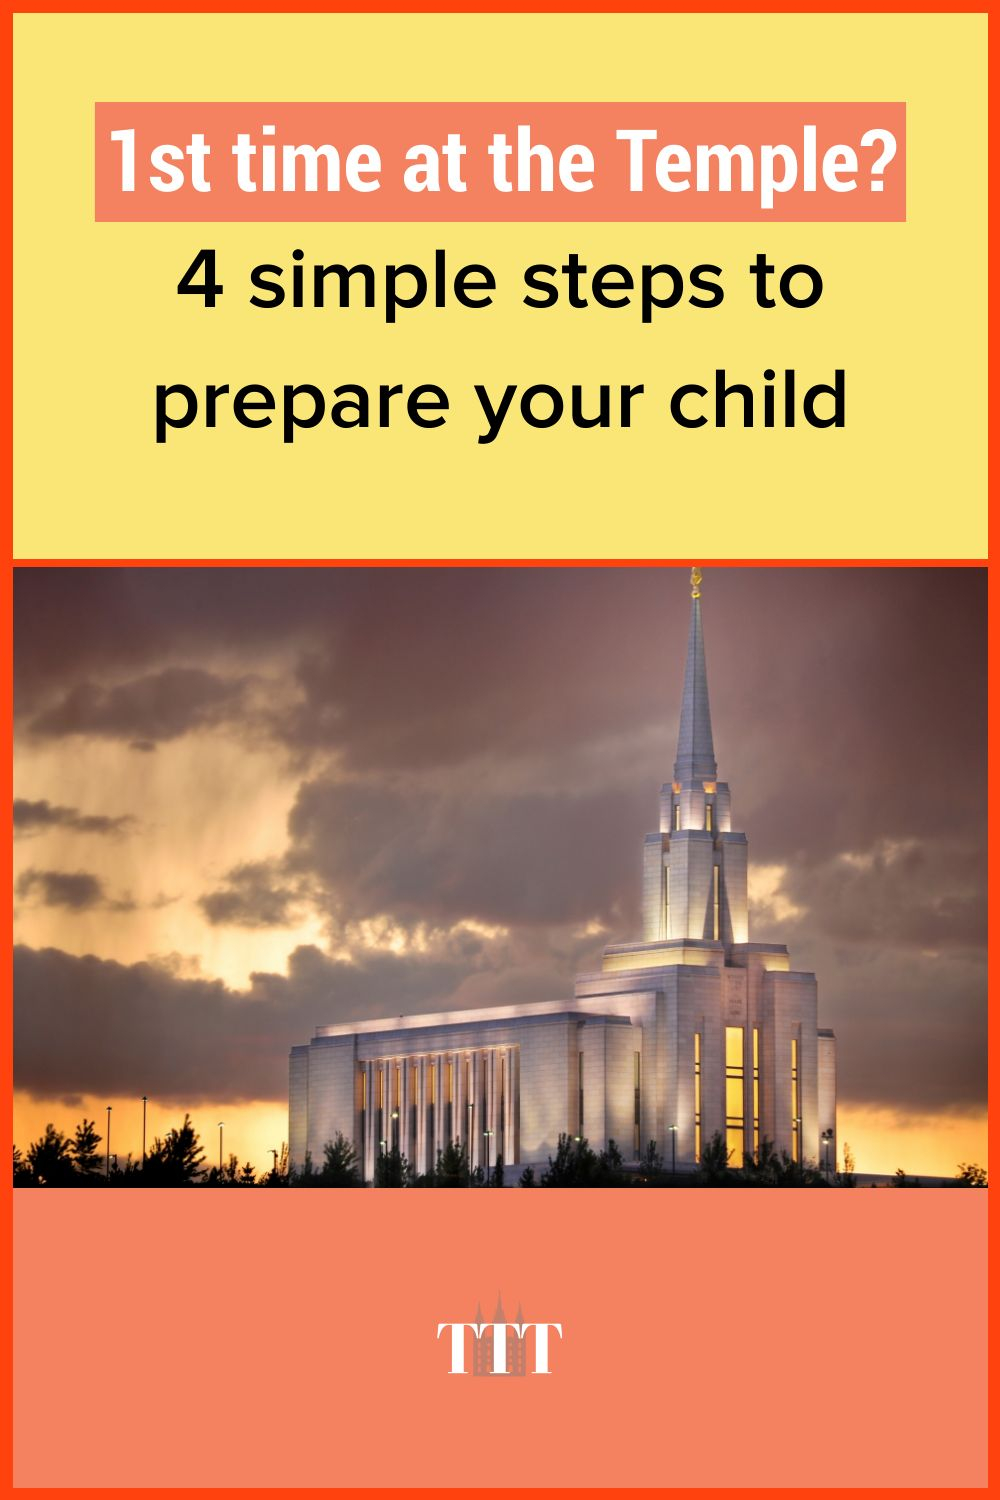 {1st time at the Temple?} 4 simple steps to prepare your children